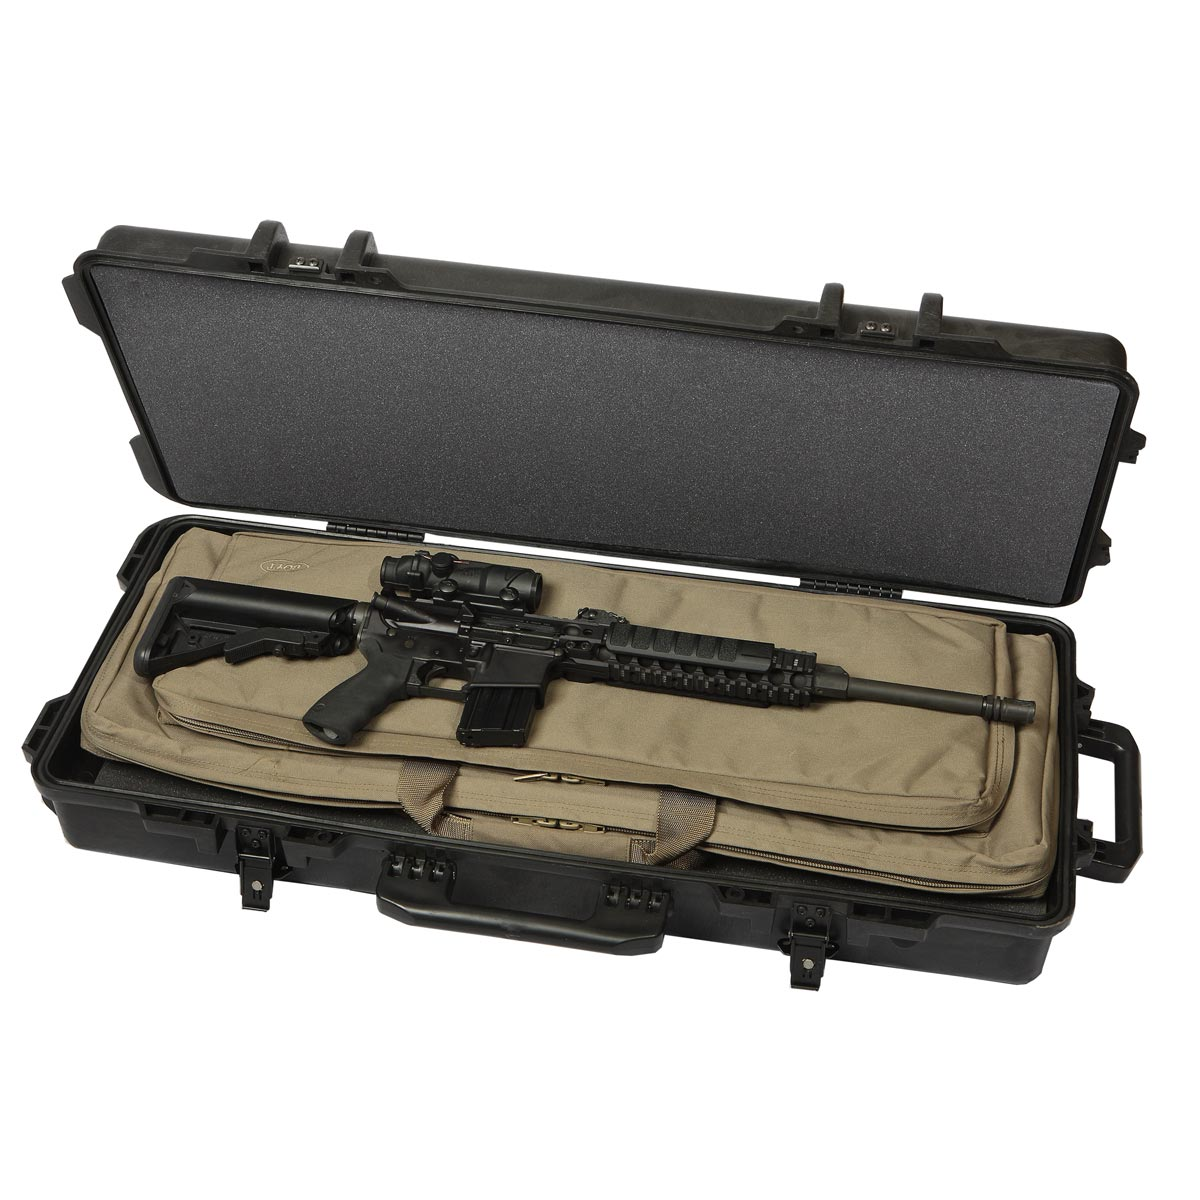 Boyt H36-TAC536 Hard-Sided/Soft Case Combo Carbine Case - H36-TAC536